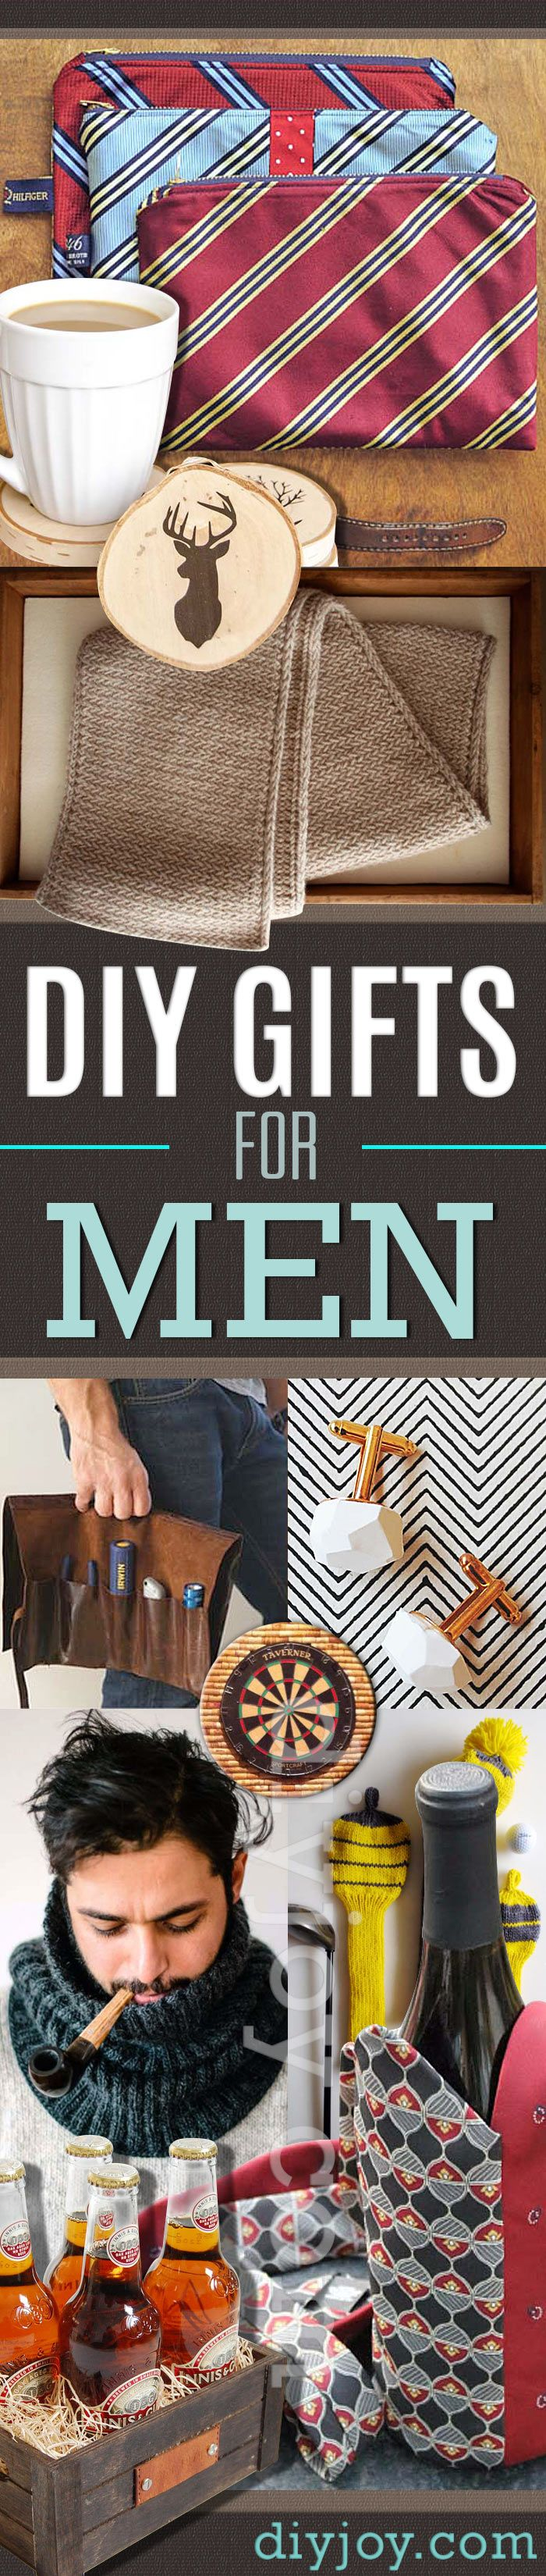 Pin by Athena Katrine on Diy Ideas Diy gifts for men